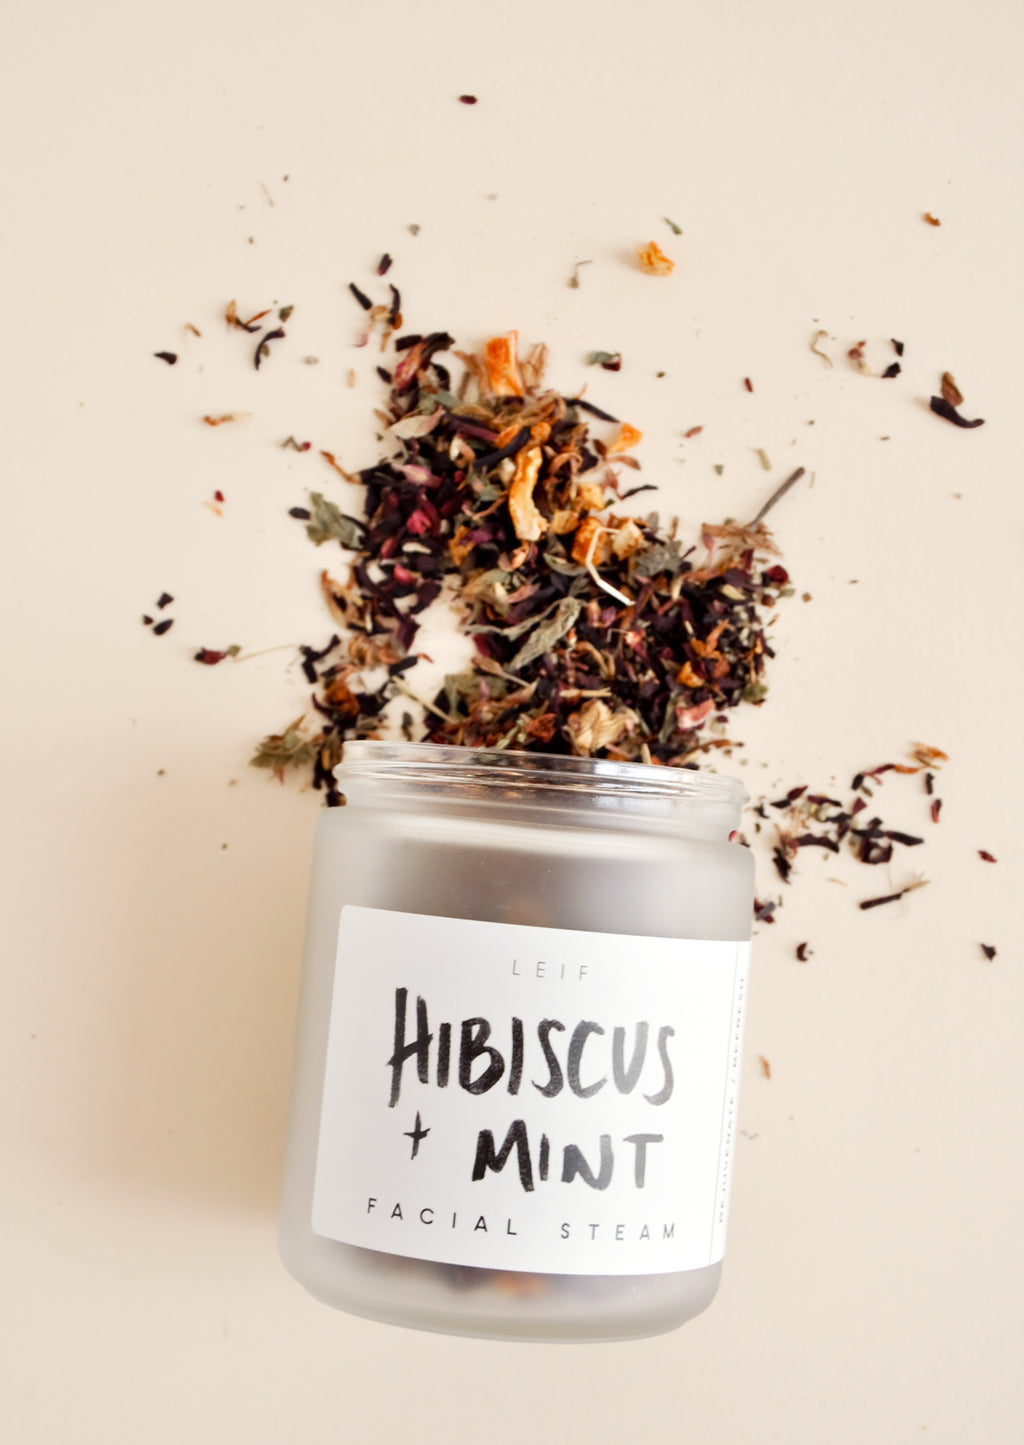 1: A small frosted glass jar with a black and white label spilling out a mix of dried flowers.